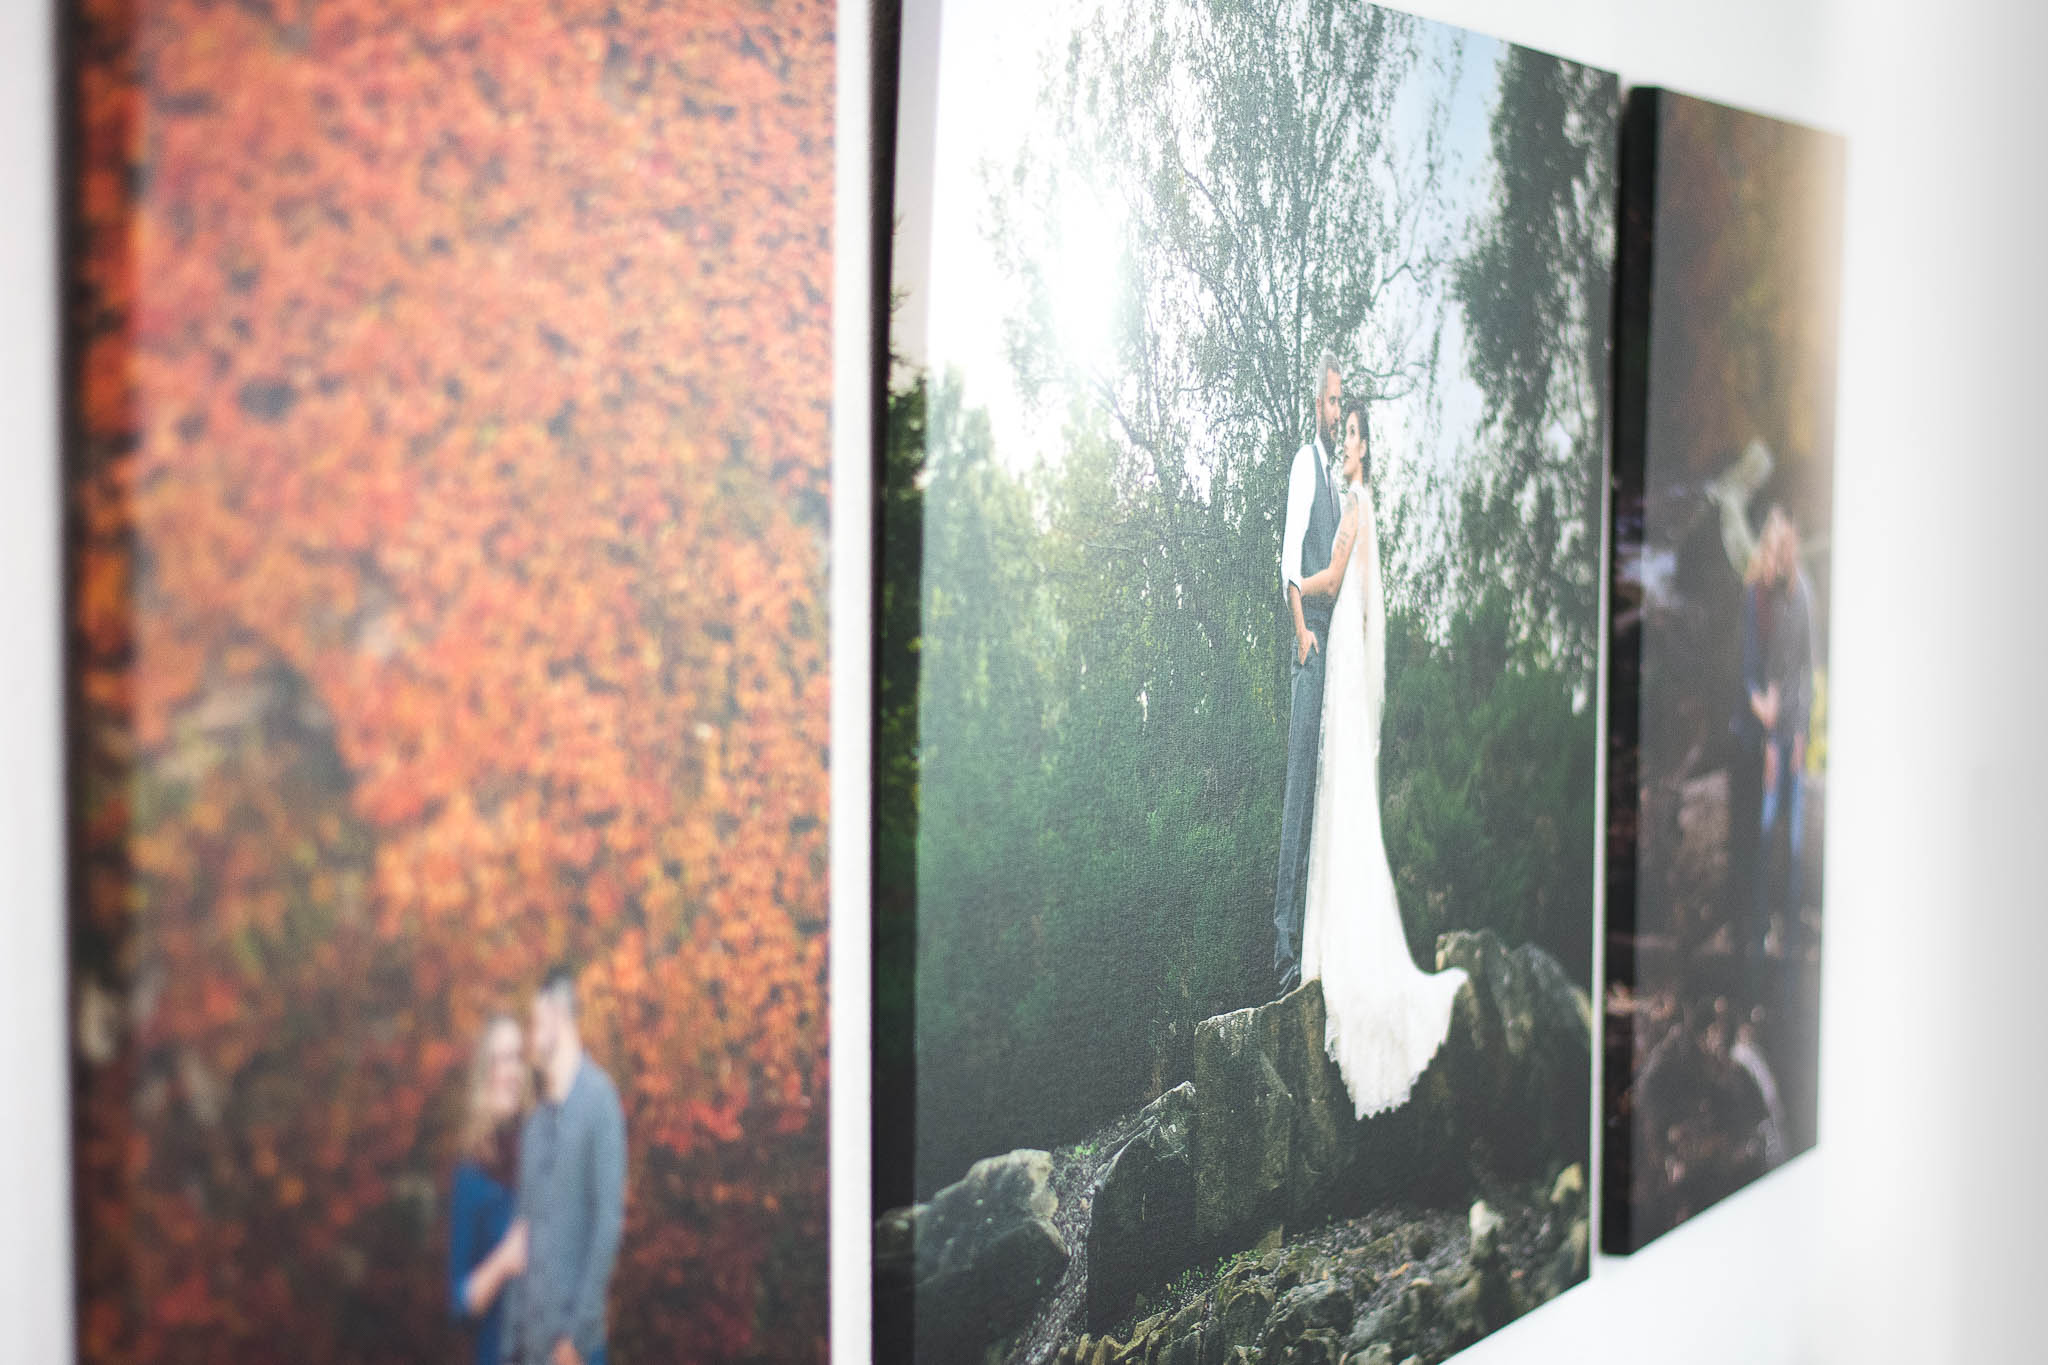 Wall art Canvases in Kropp Photography Portrait Studio